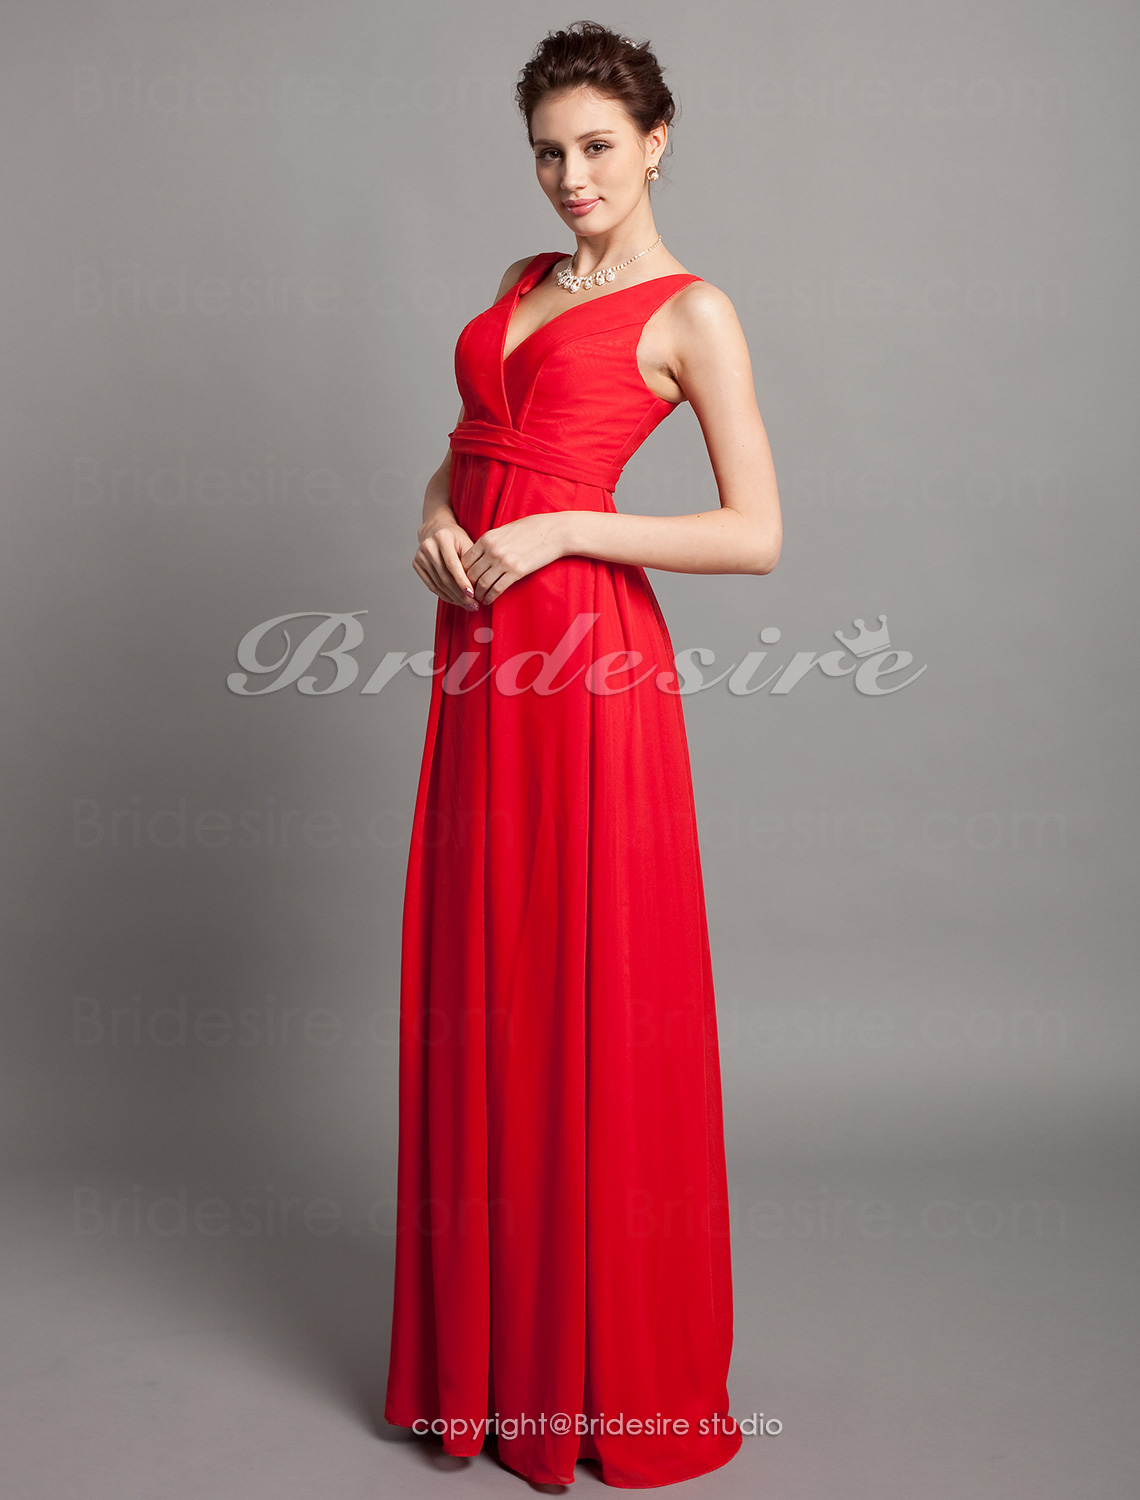 Sheath/ Column Floor-length V-neck Maternity Chiffon Over Elastic satin Bridesmaid/ Wedding Party Dress